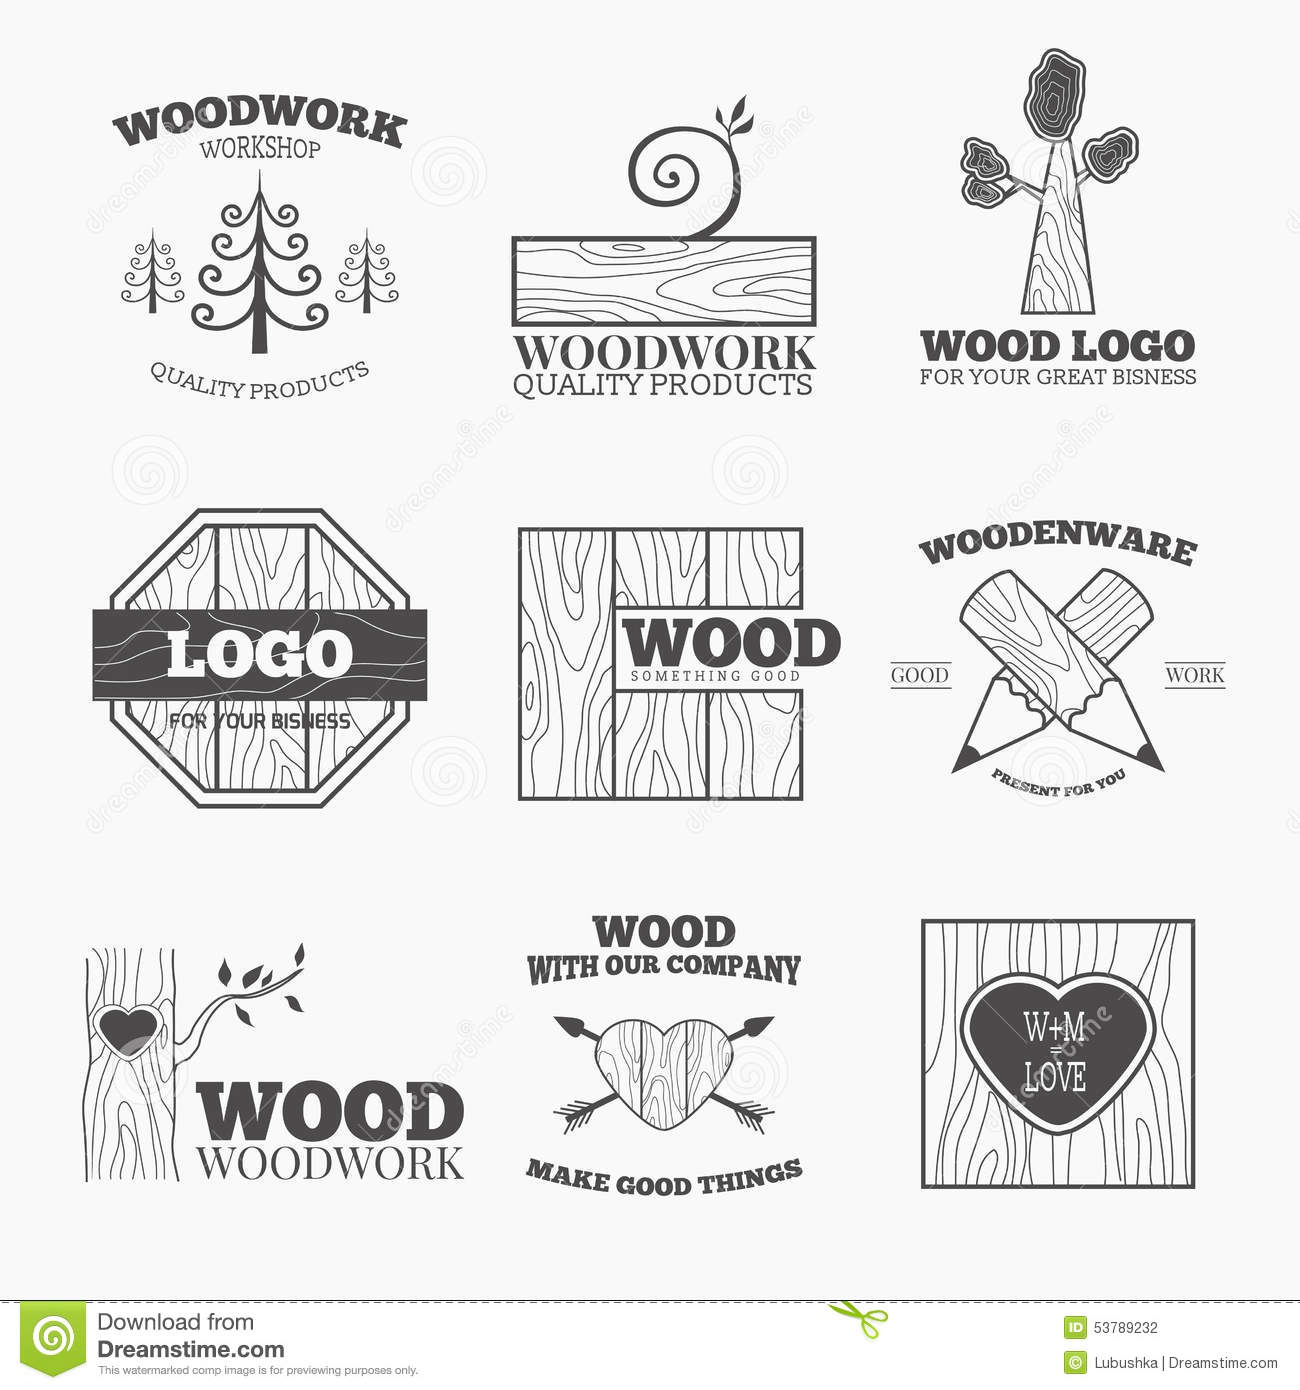 Pro Shop likewise Stock Illustration Lumberjack Logos Set Vintage Carpentry Logotypes Made Vector Wood Work Manufacture Label Templates Detailed Emblems Image56180988 further US4584918 also GC5397K sws Rust On The Gri also Showthread. on saw mill